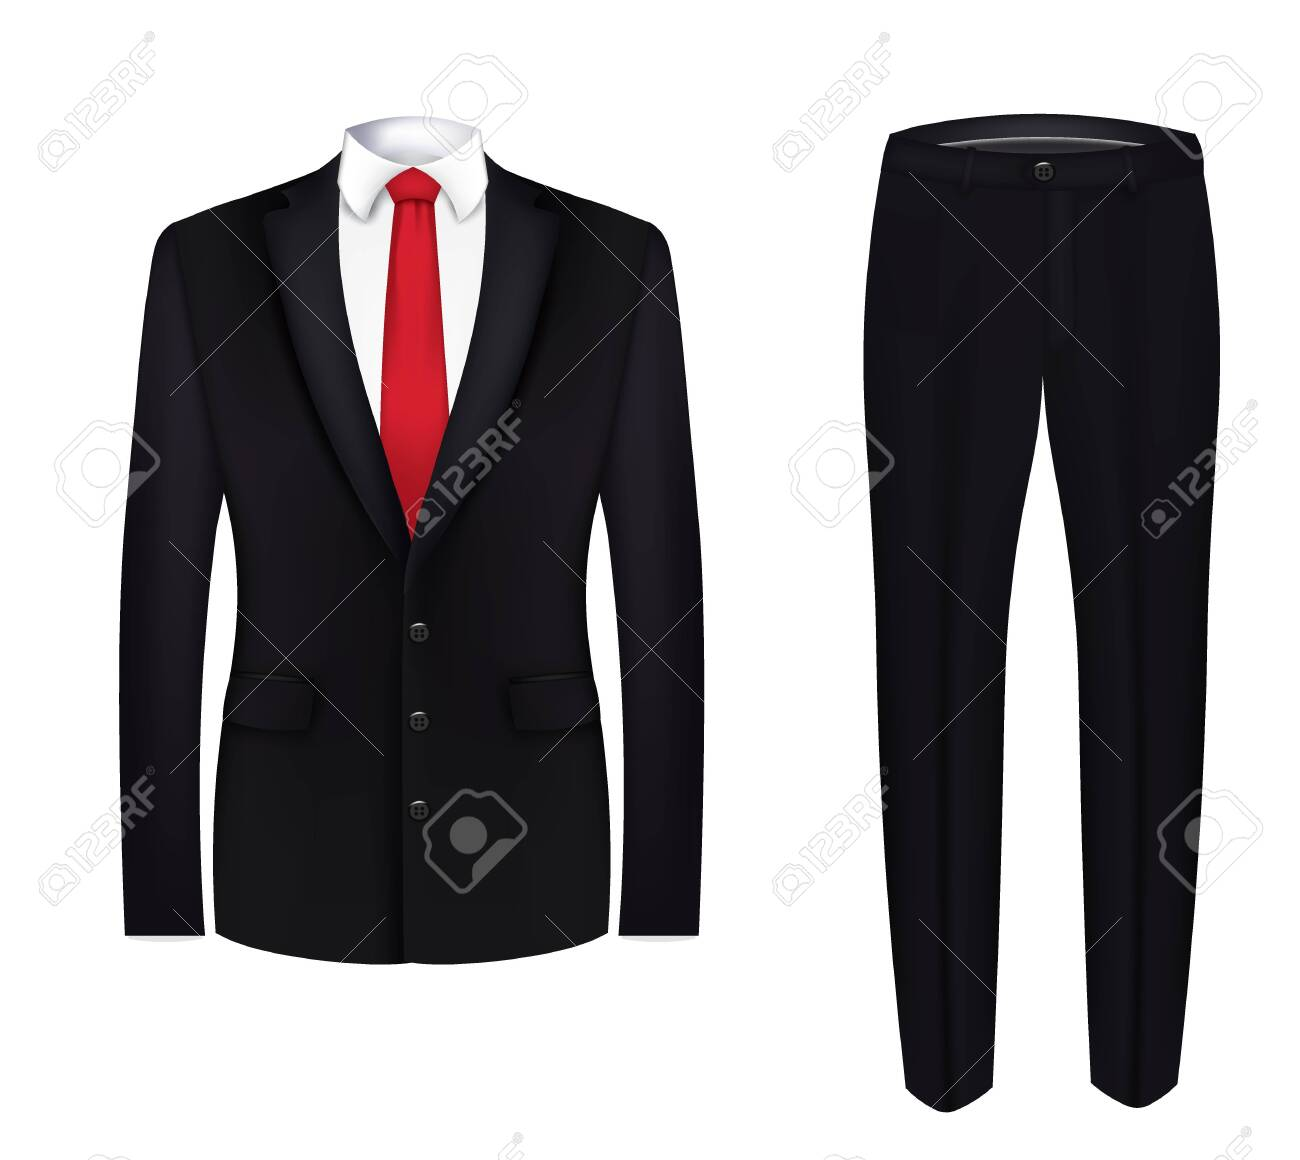 Red tie, white shirt and black suit. close up. vector - 133624771